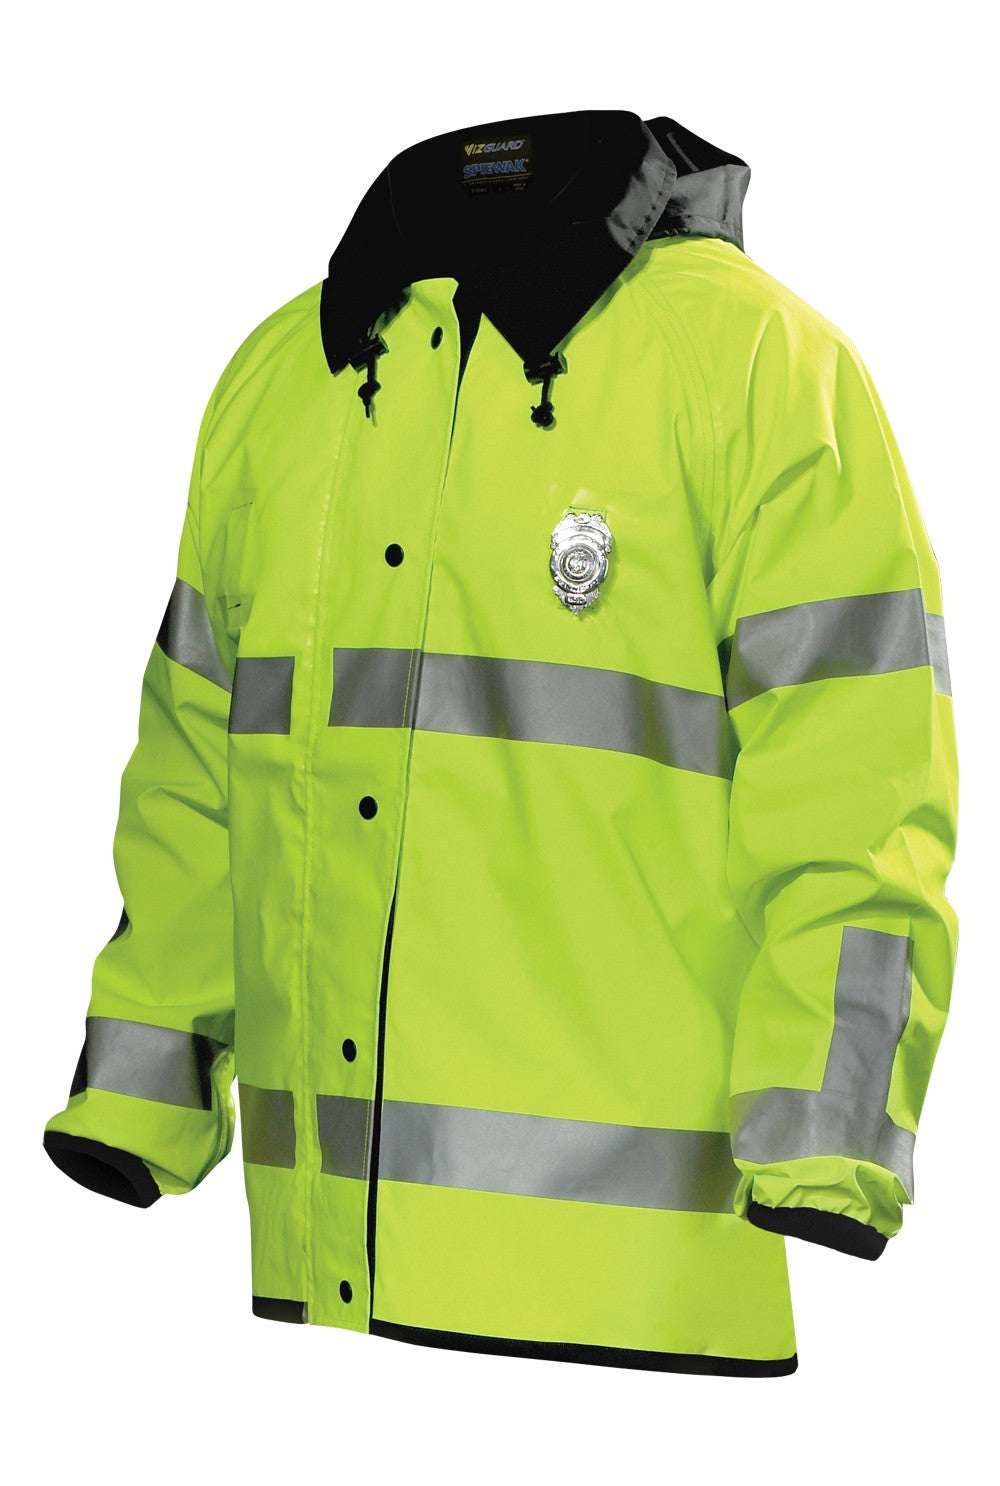 Spiewak VizGuard Short Reversible Duty Rain Jacket ANSI 107-2010 Class 3 - red-diamond-uniform-police-supply